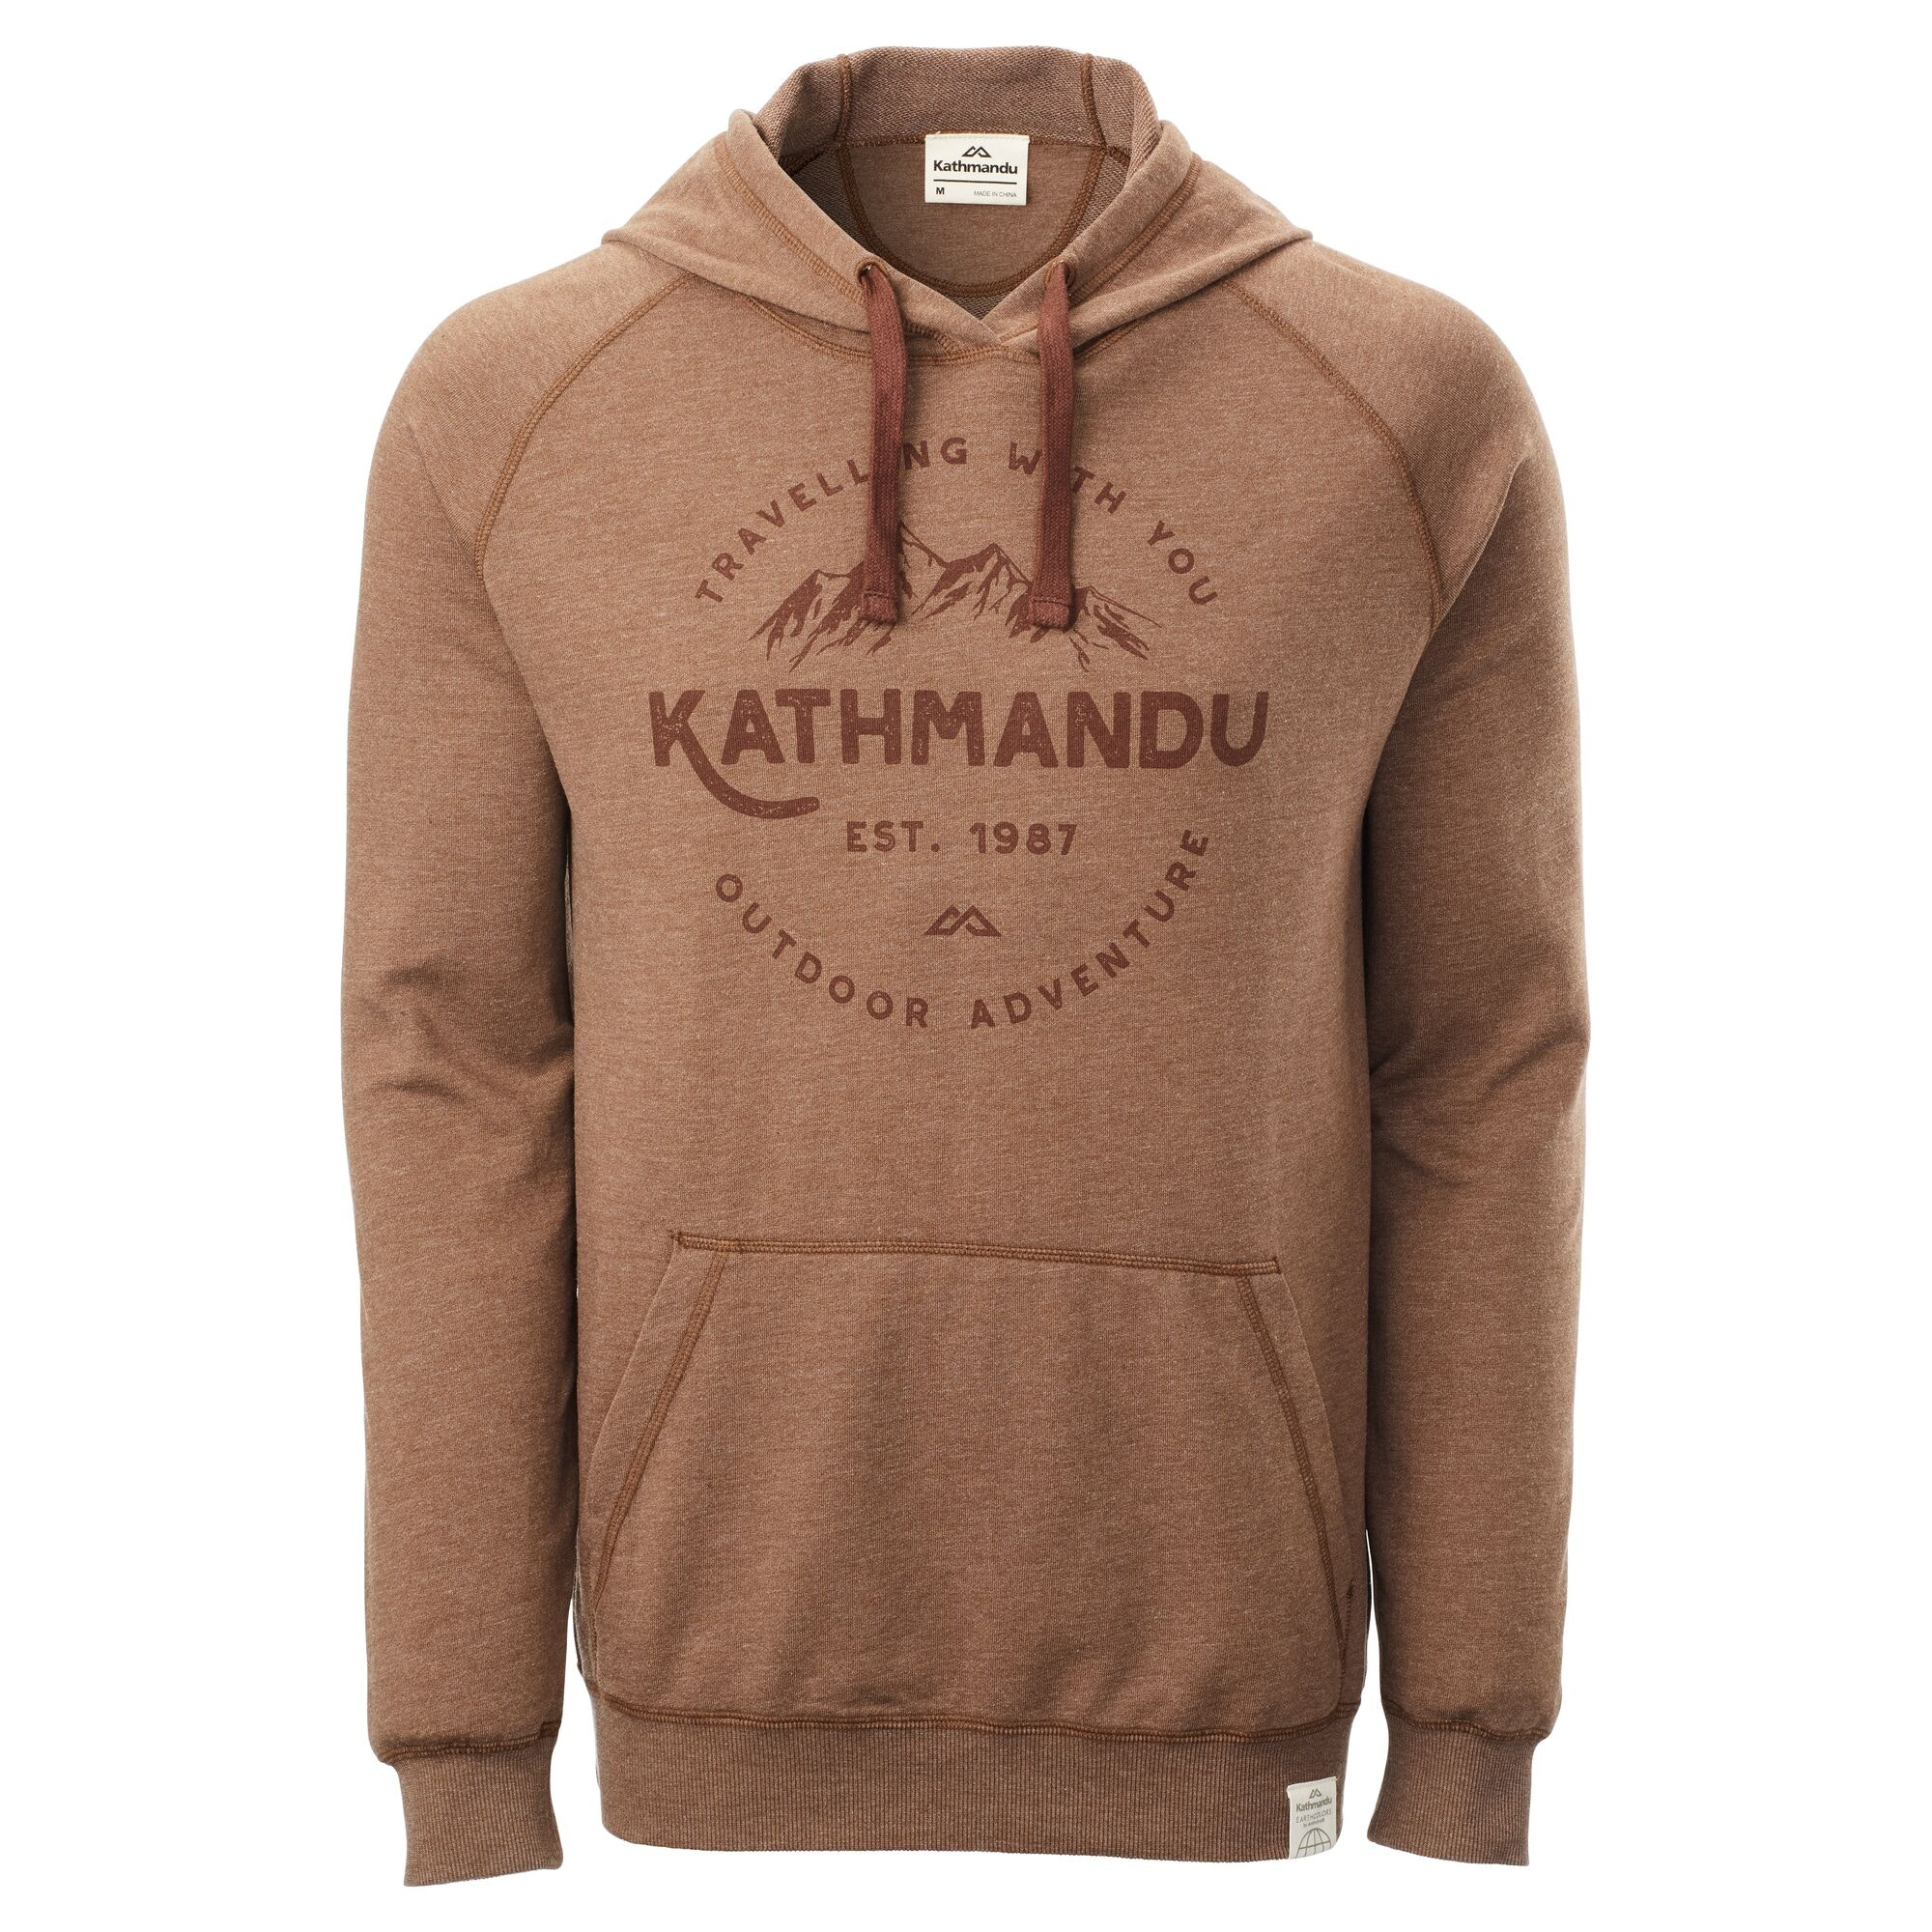 Pullover Hoodie Vest Mens Hoodies Jumpers Pullovers Sale Online Kathmandu Nz